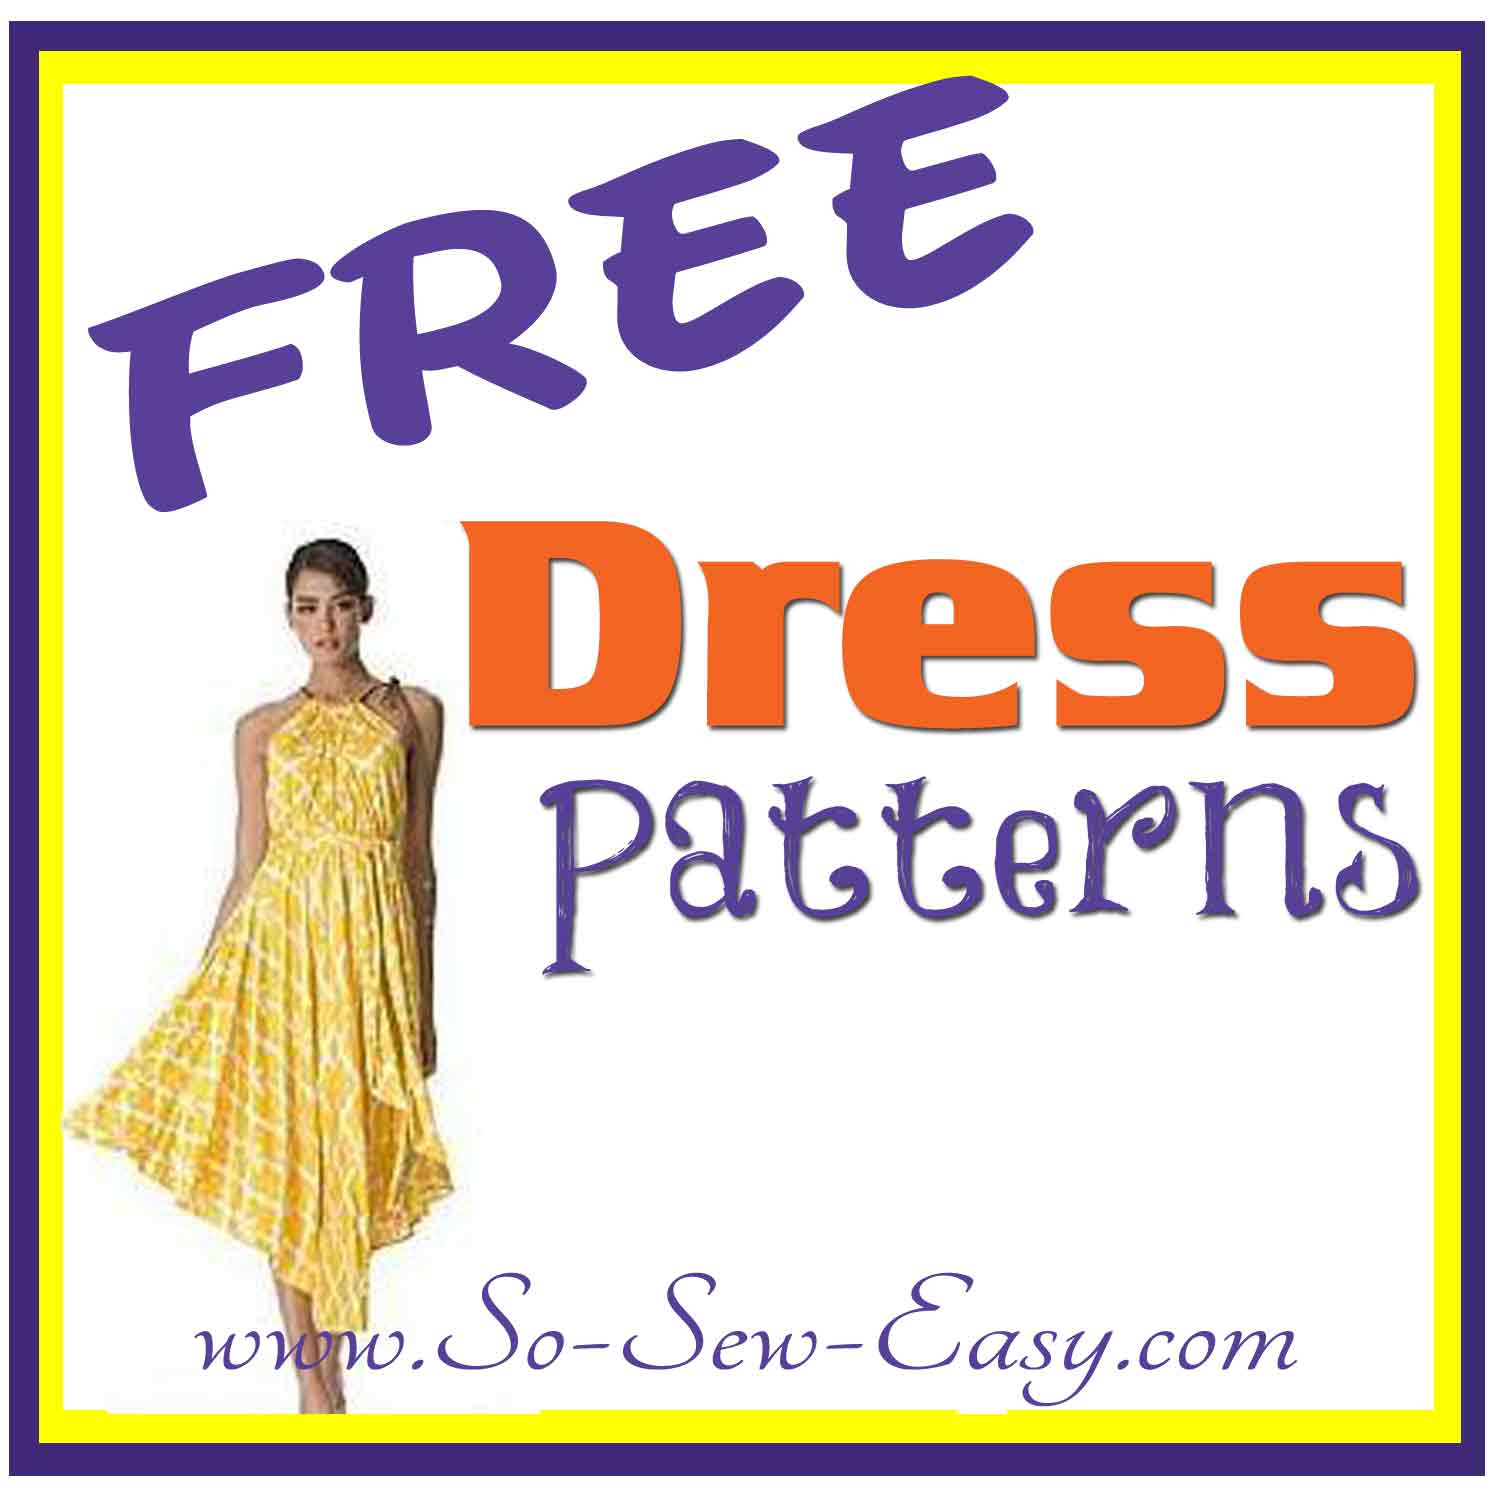 3edd7aaa76f FREE Dress patterns listing - So Sew Easy